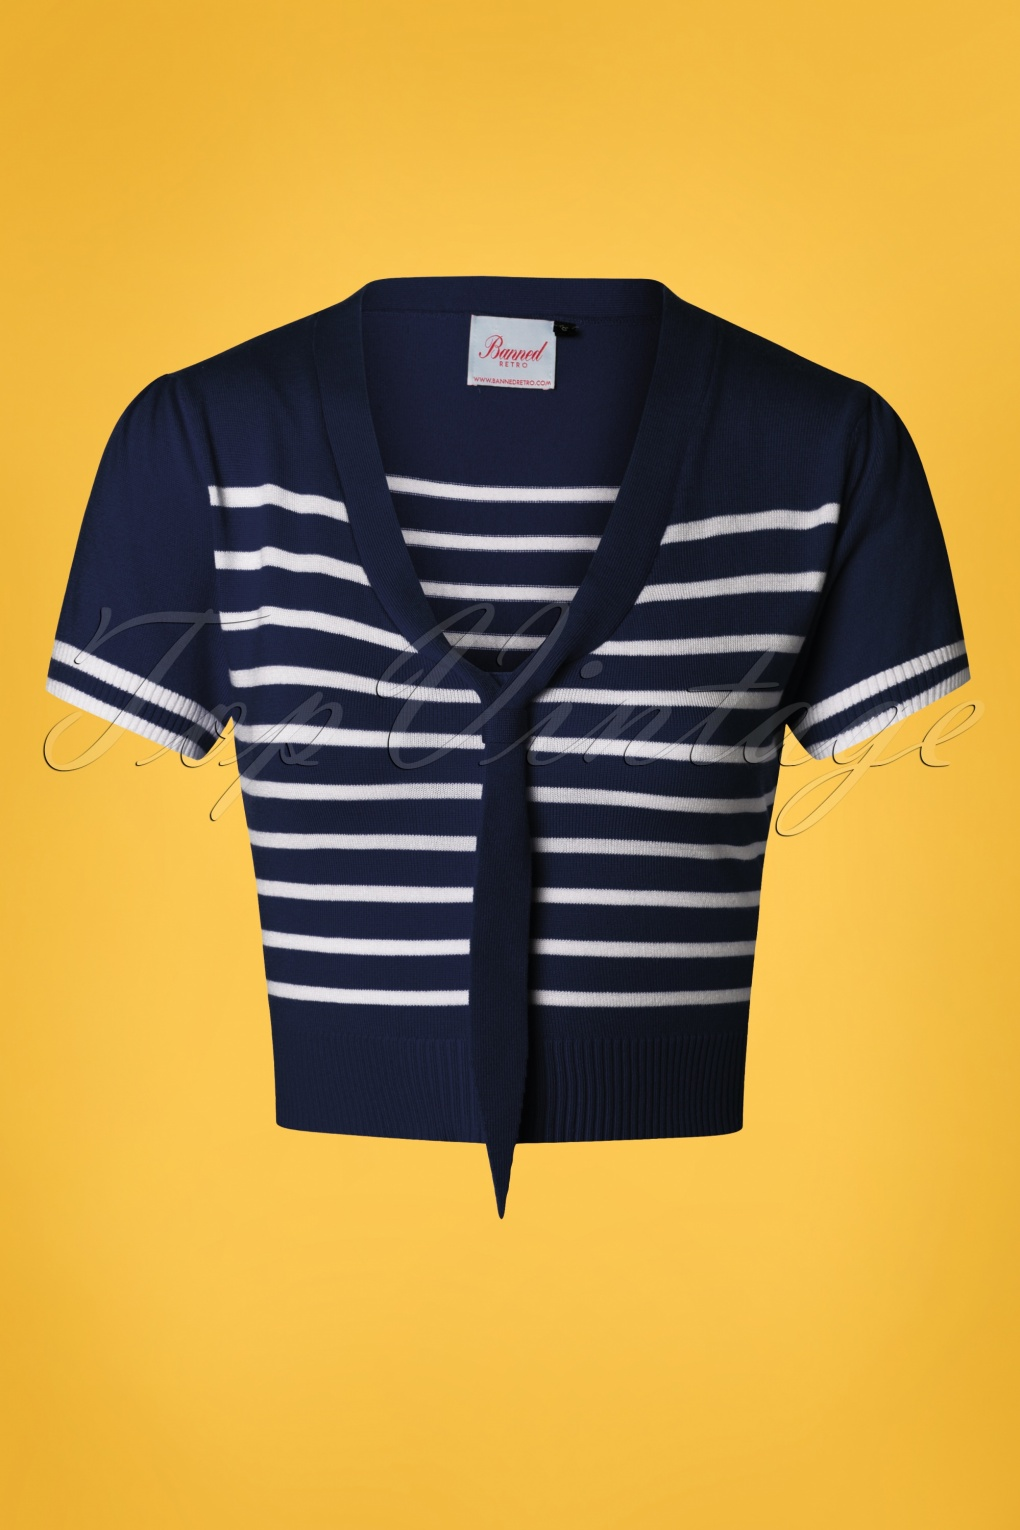 Pin Up Dresses | Pinup Clothing & Fashion 50s Sailor Stripe Tie Top in Navy £32.86 AT vintagedancer.com